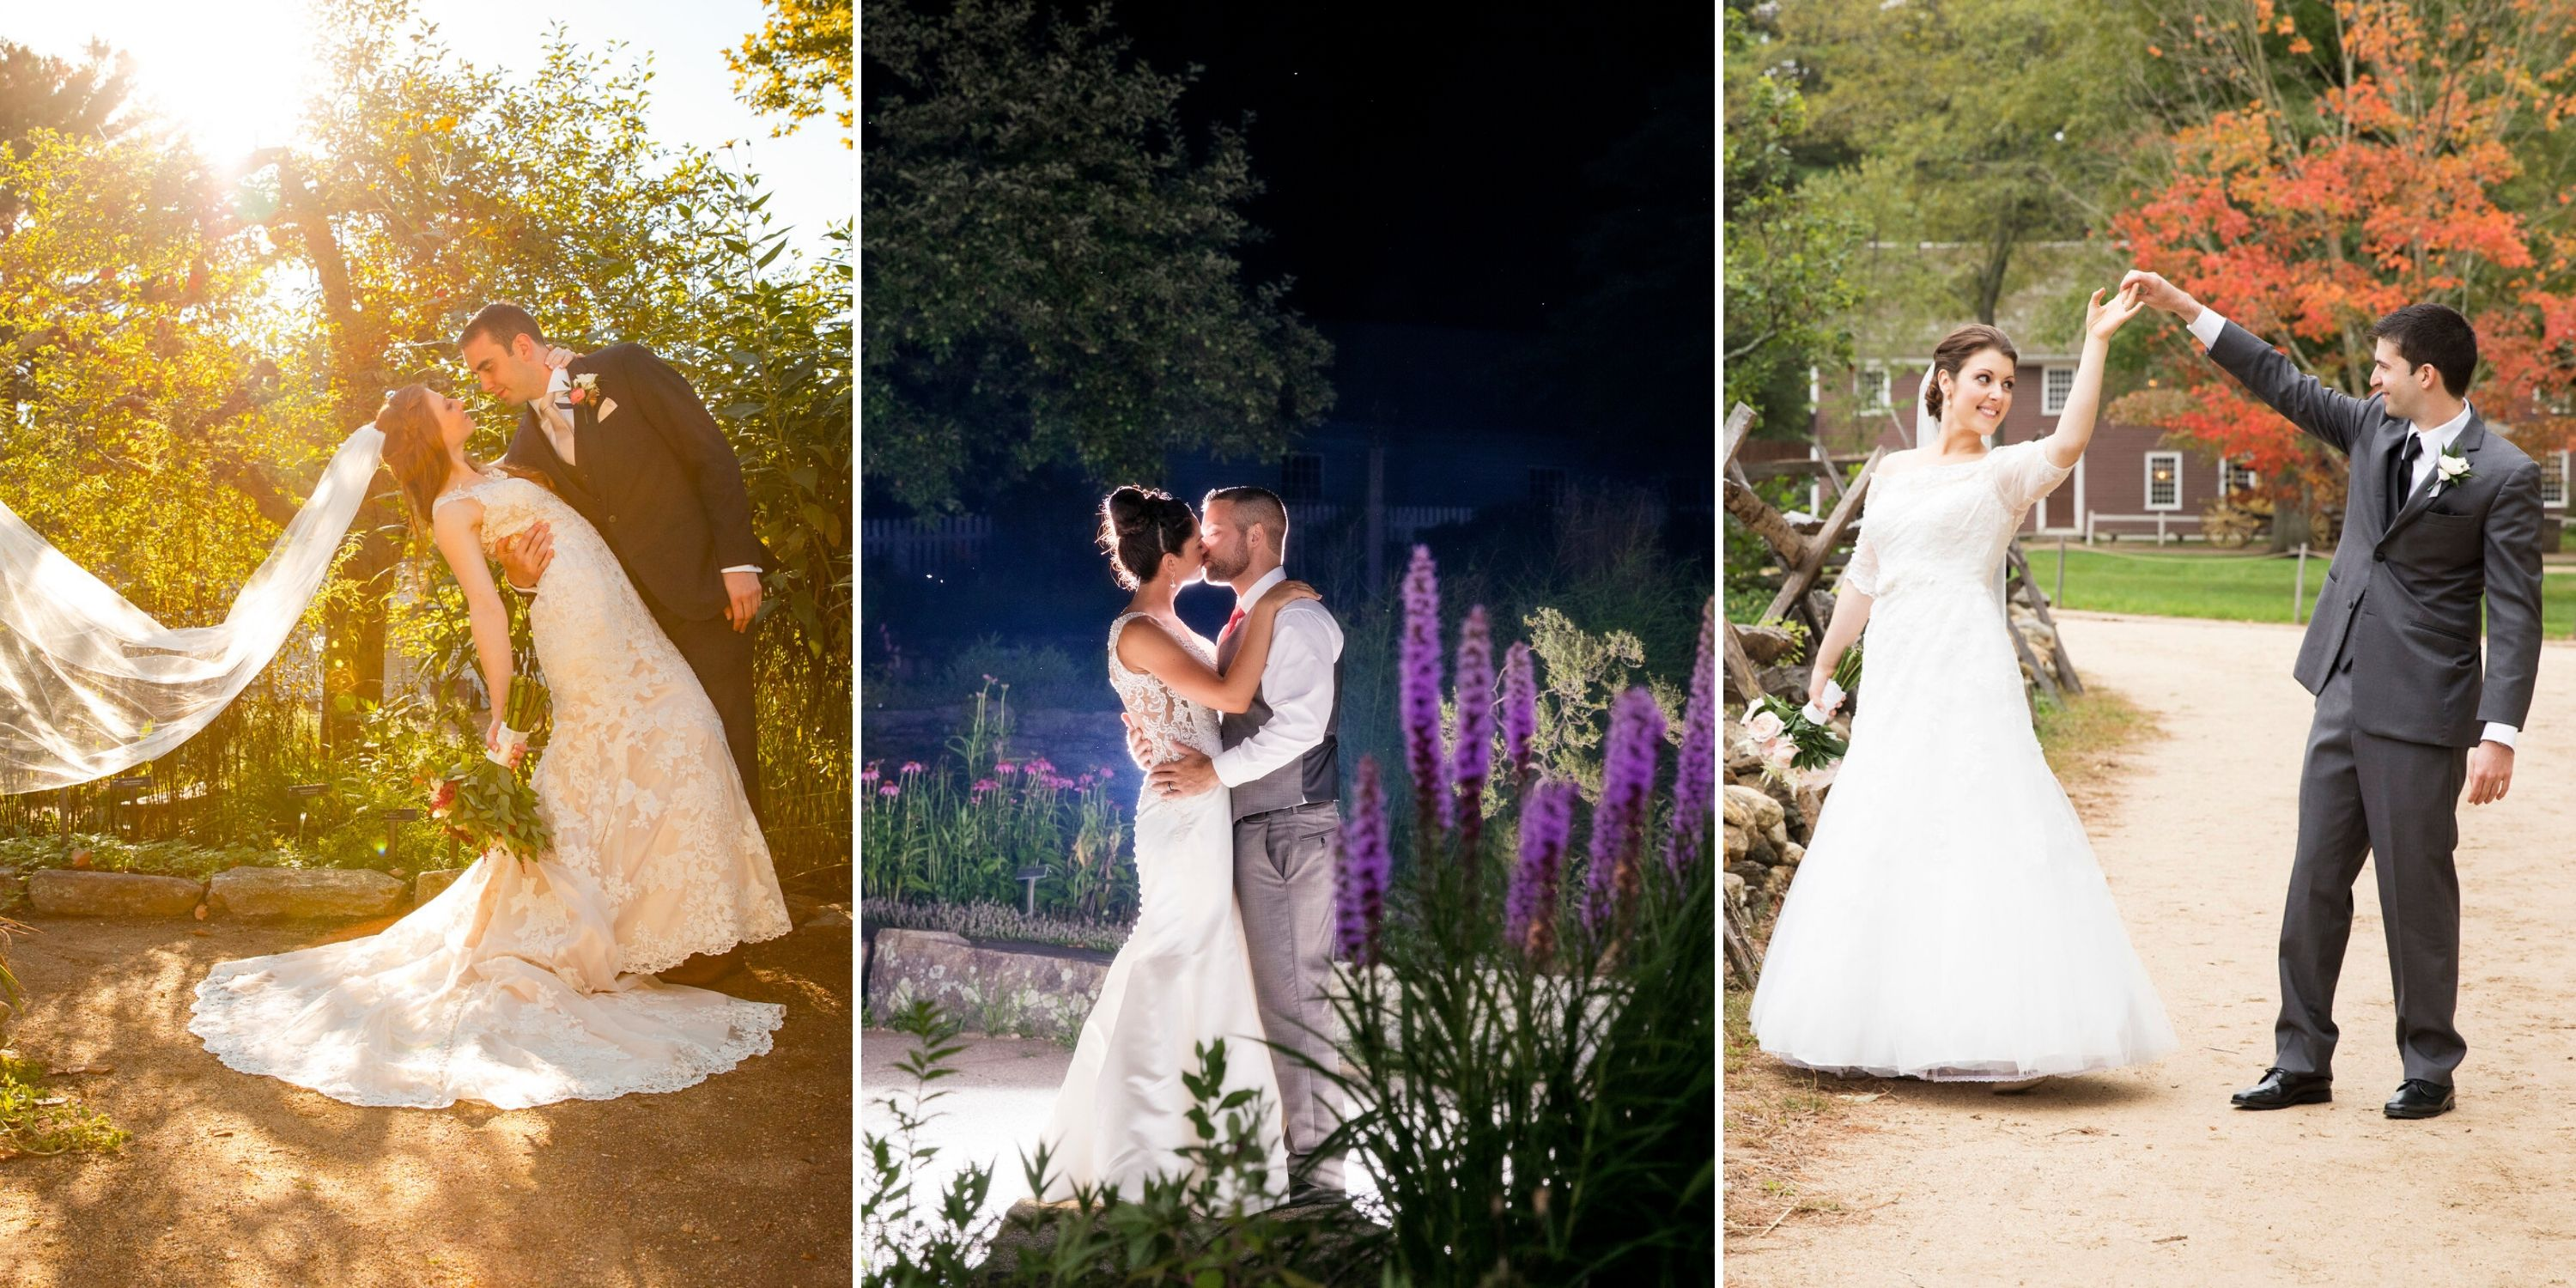 3 Photos of couples at the Village - A couple embraces in a garden, a couple kisses at night in the garden, a couple dances outside in fall